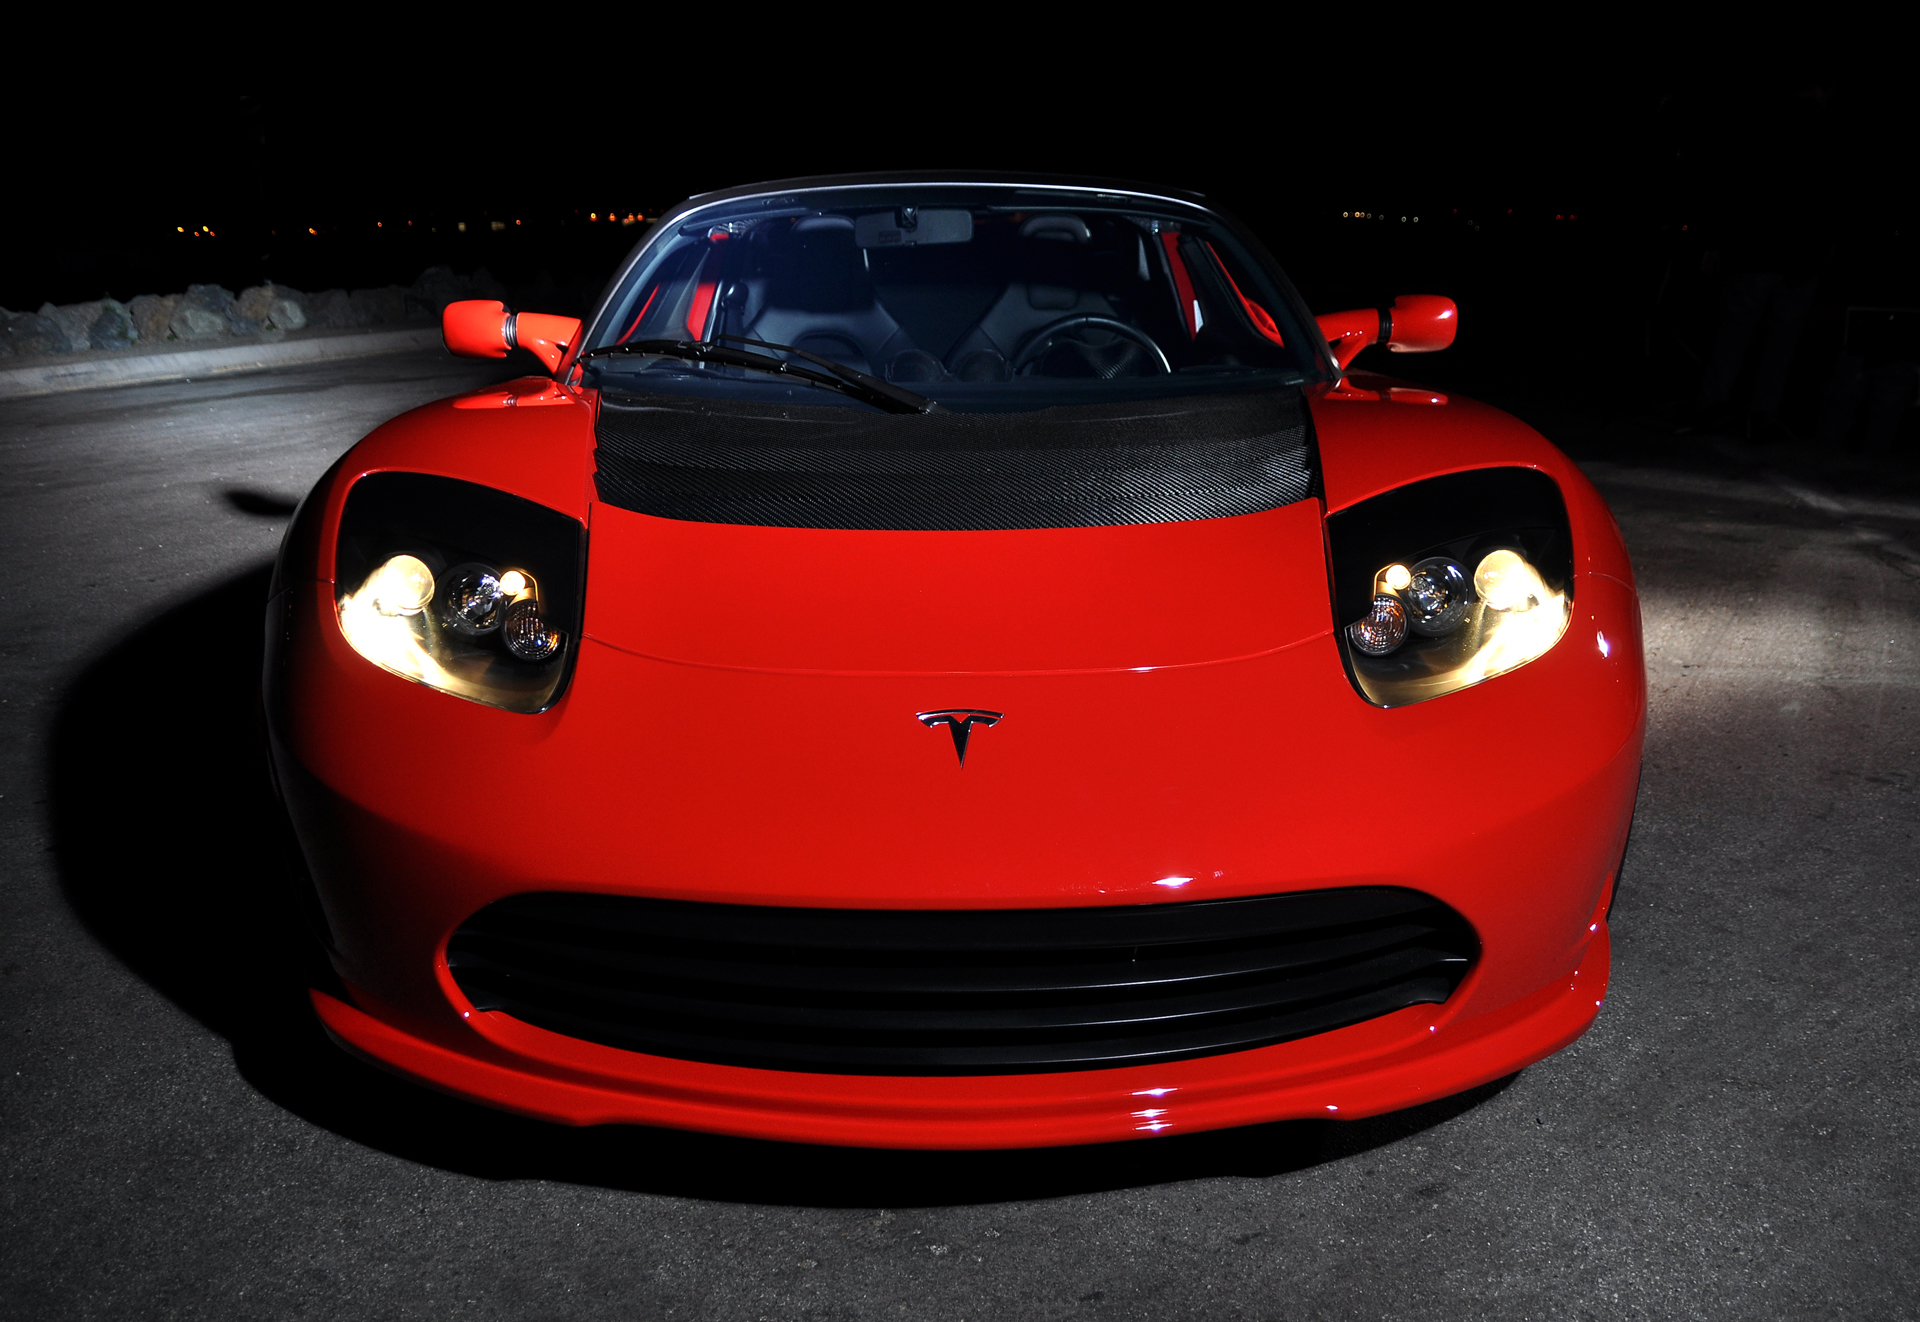 Tesla Motors - Roadster - front / face avant